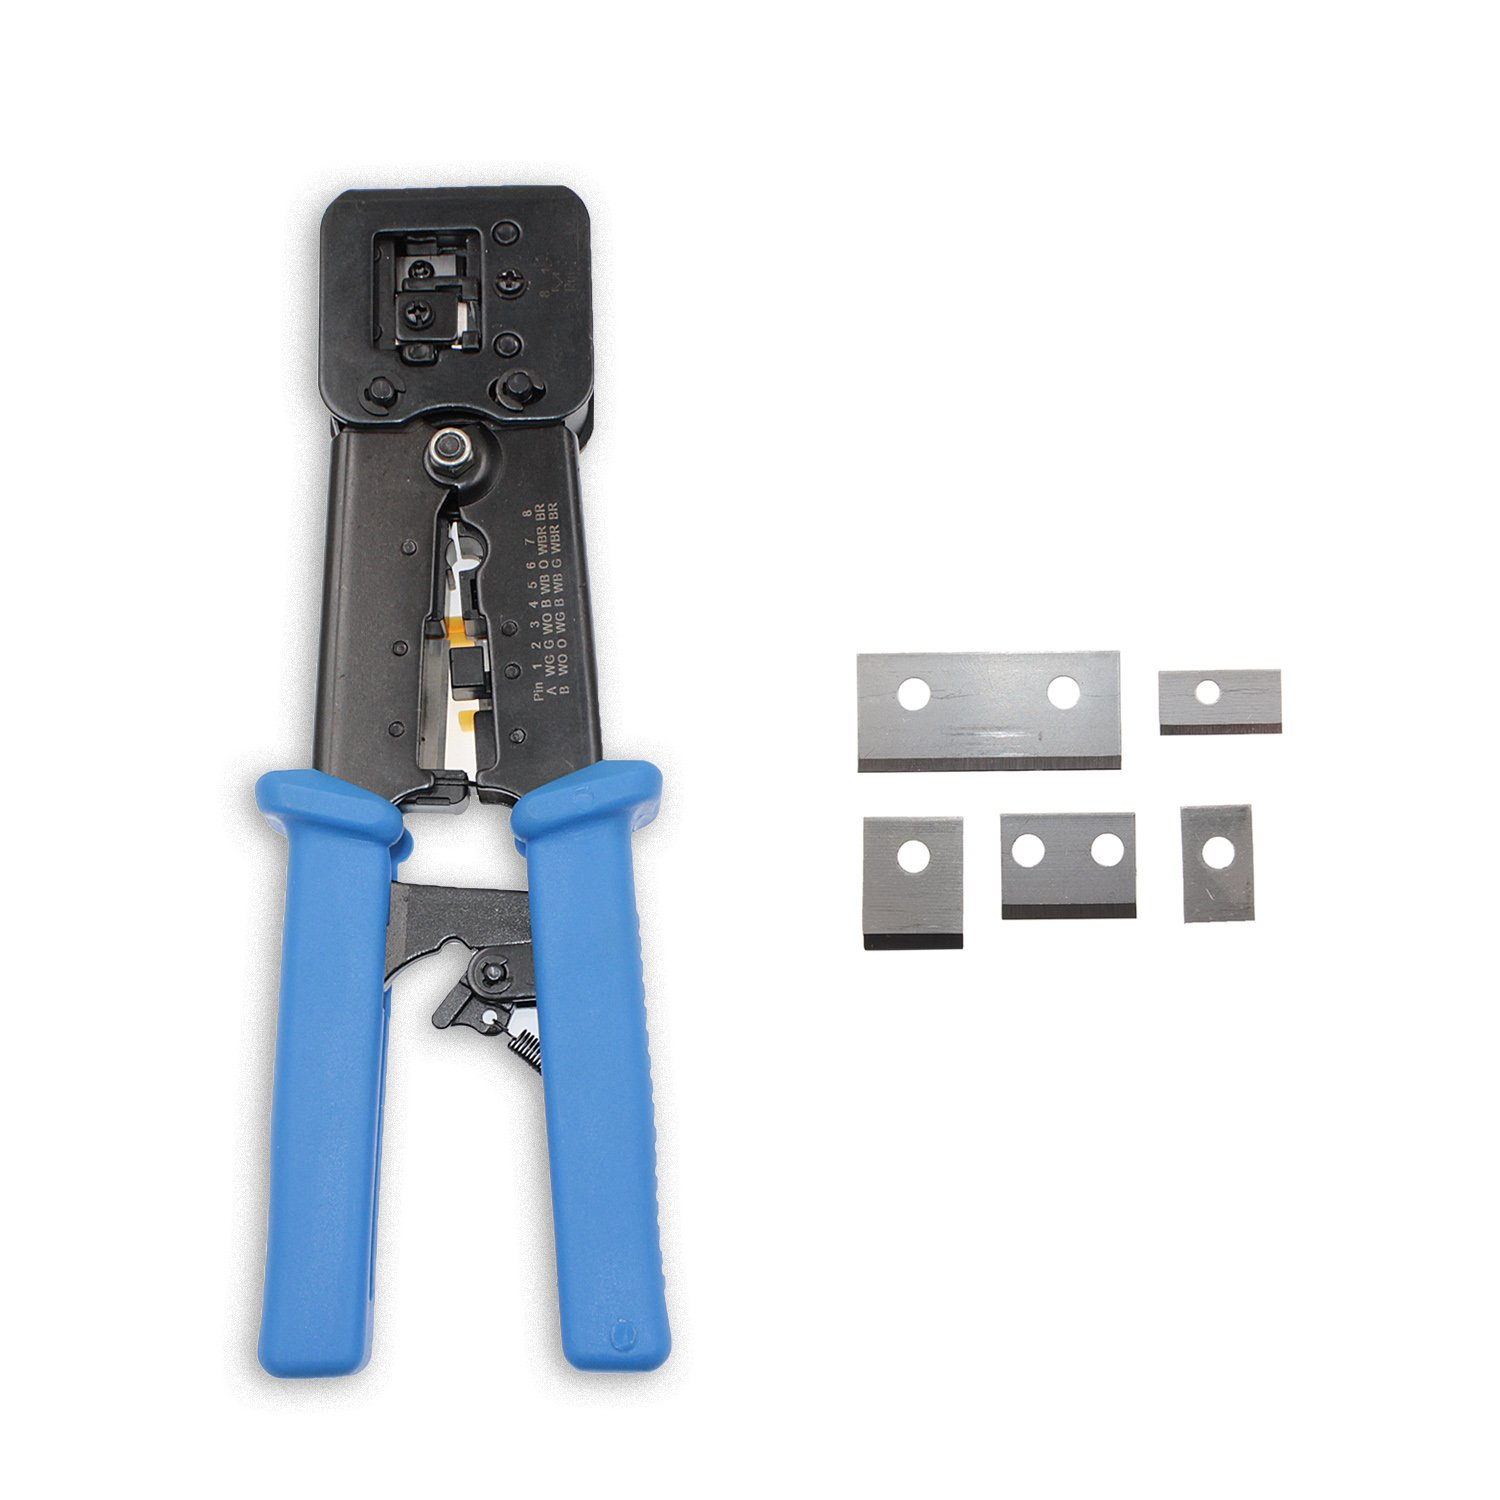 Bonus 5 Pack Blade Replacement Combo Pack of RJ45 Professional Heavy Duty Crimp Tool Ethernet Connector Crimper Cutter HD Crimping Stripper Stripping Blades for EZ End Pass Through Legacy Connectors